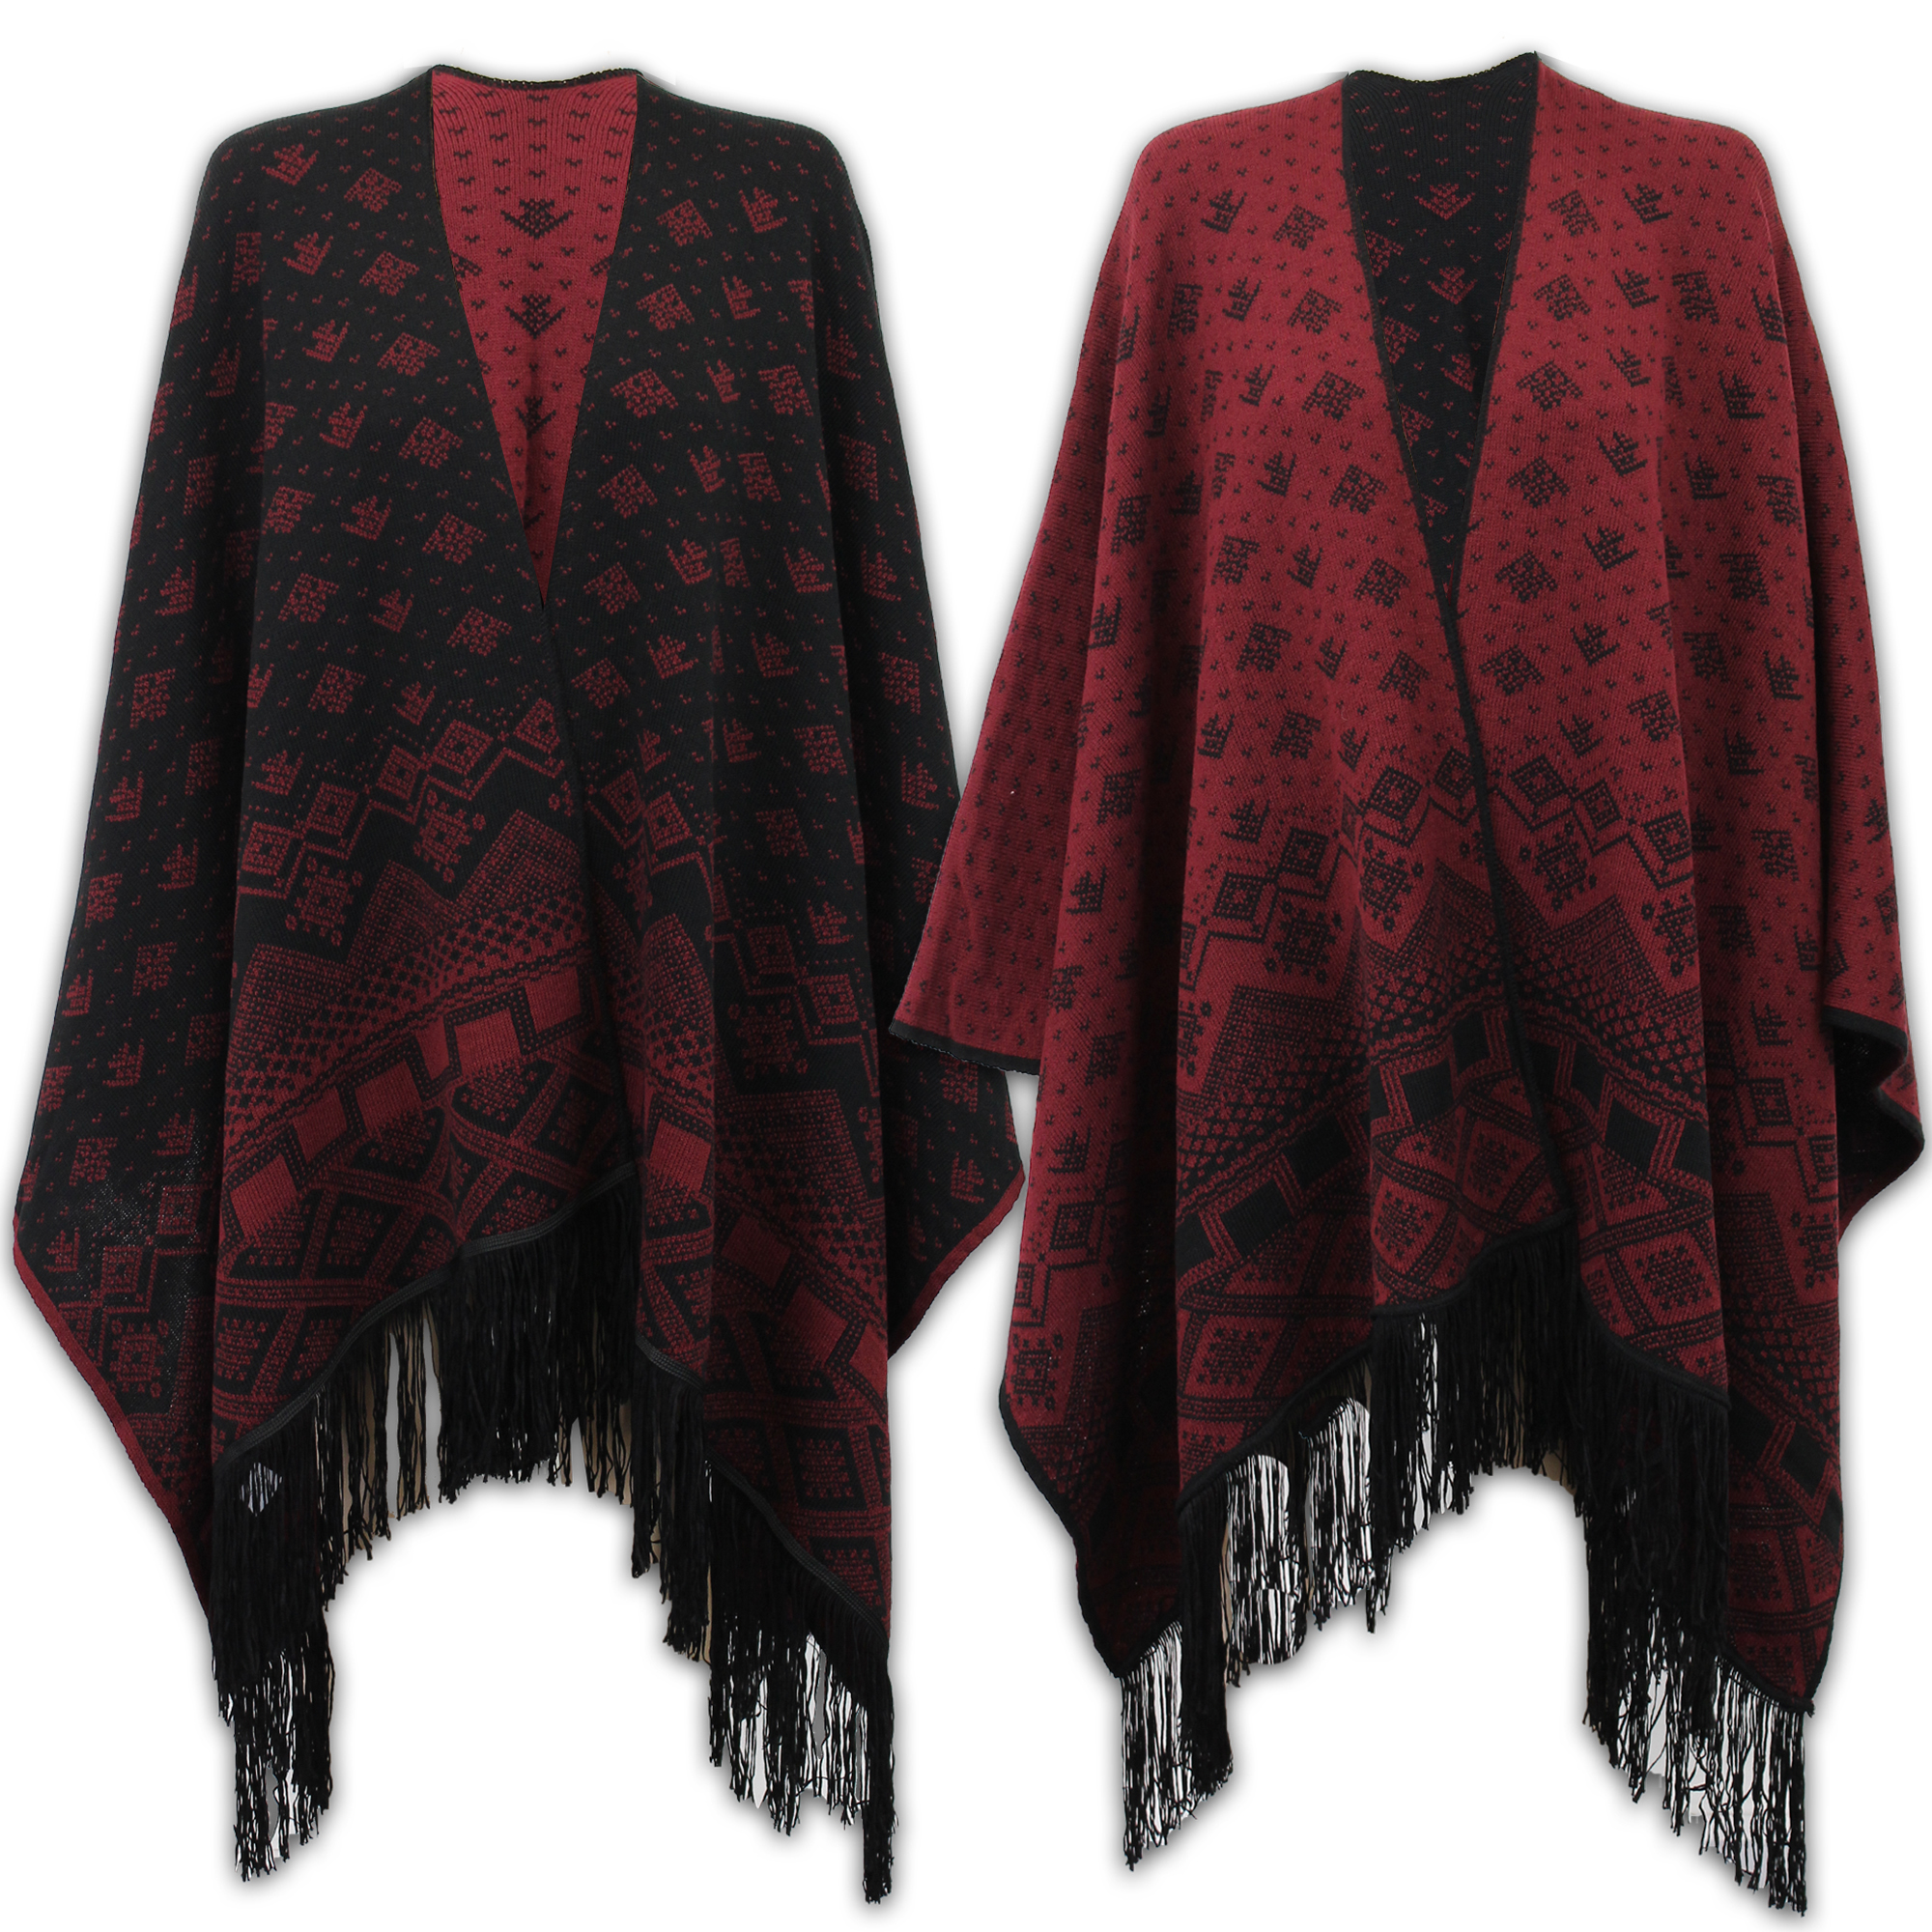 Ladies Shawl Womens Knitted Poncho Cardigan Reversible Aztec Cape Oversized N...